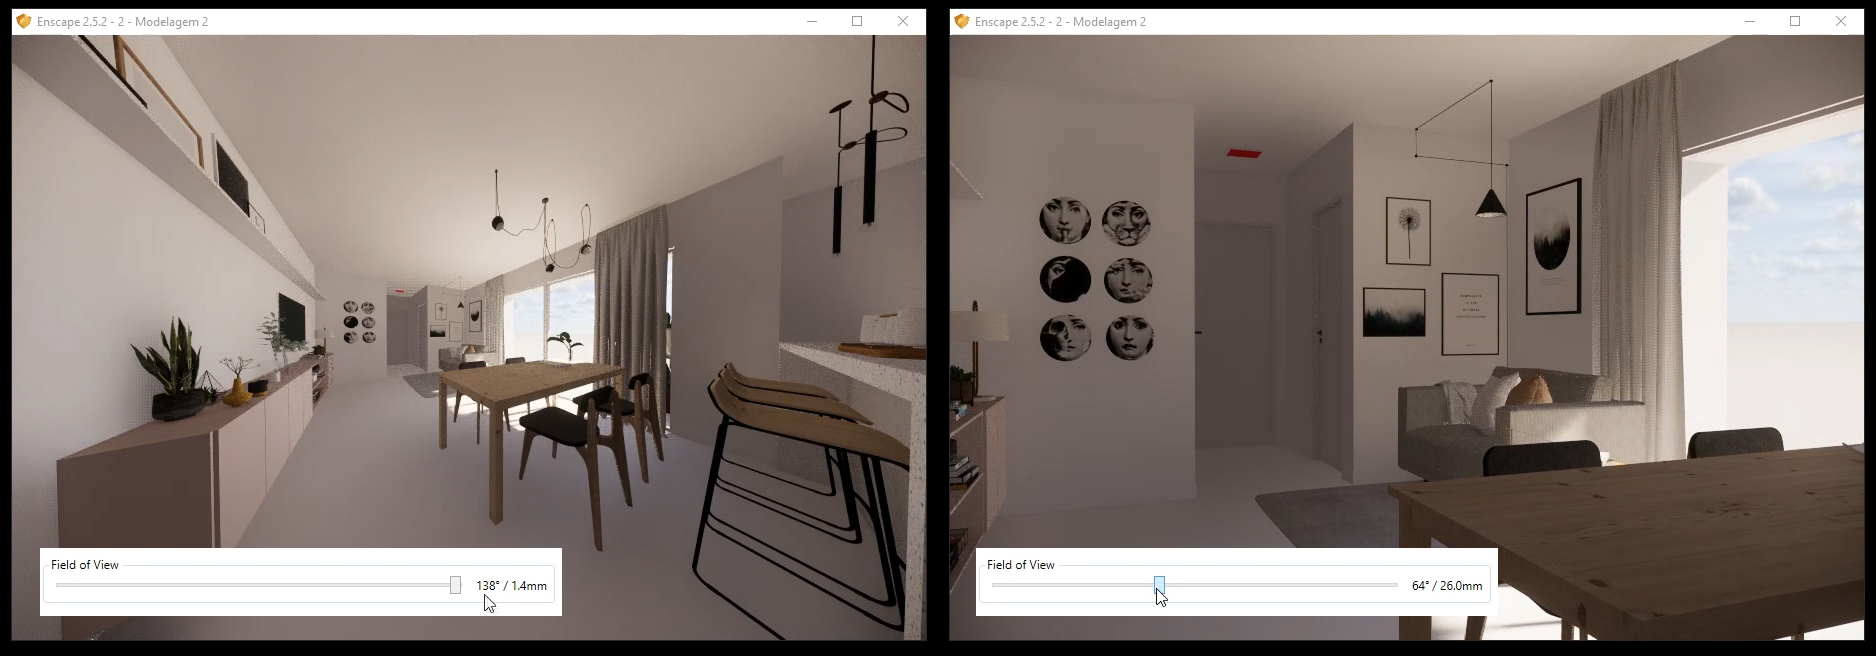 Misconfiguration of the field of view can distort your final rendering.